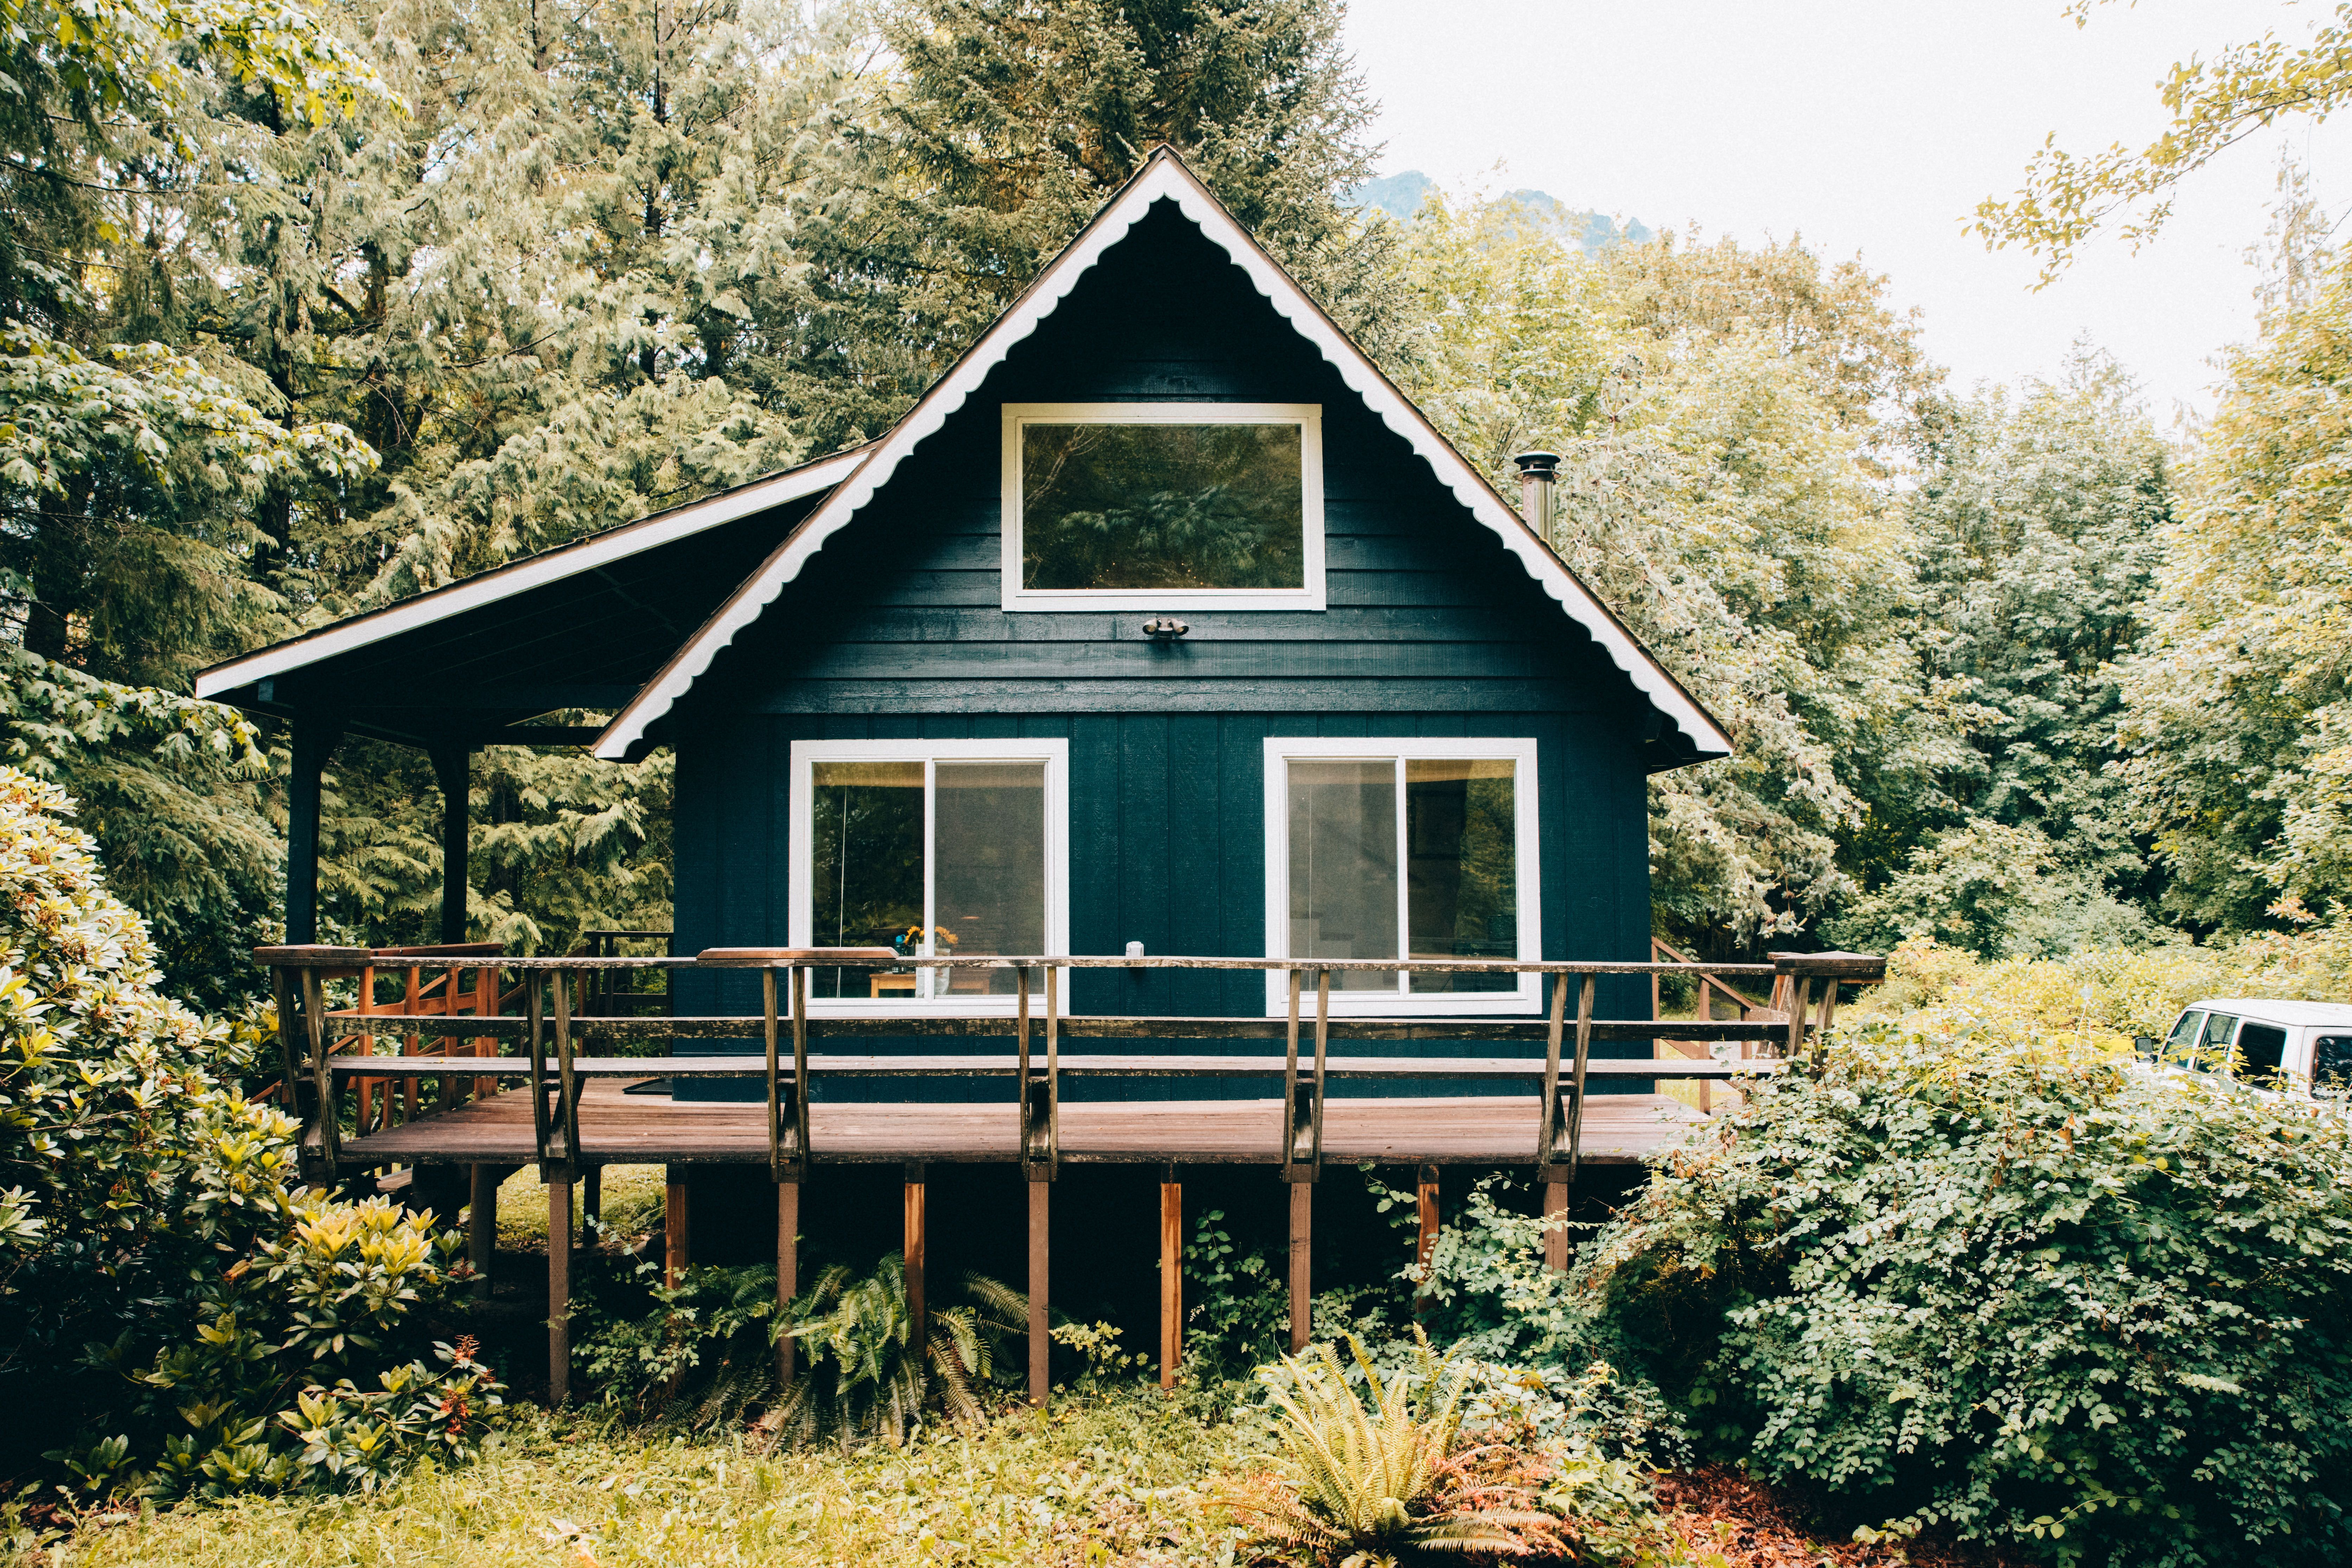 South Fork Cabin: A Unique PNW Getaway In The Cascade Mountains